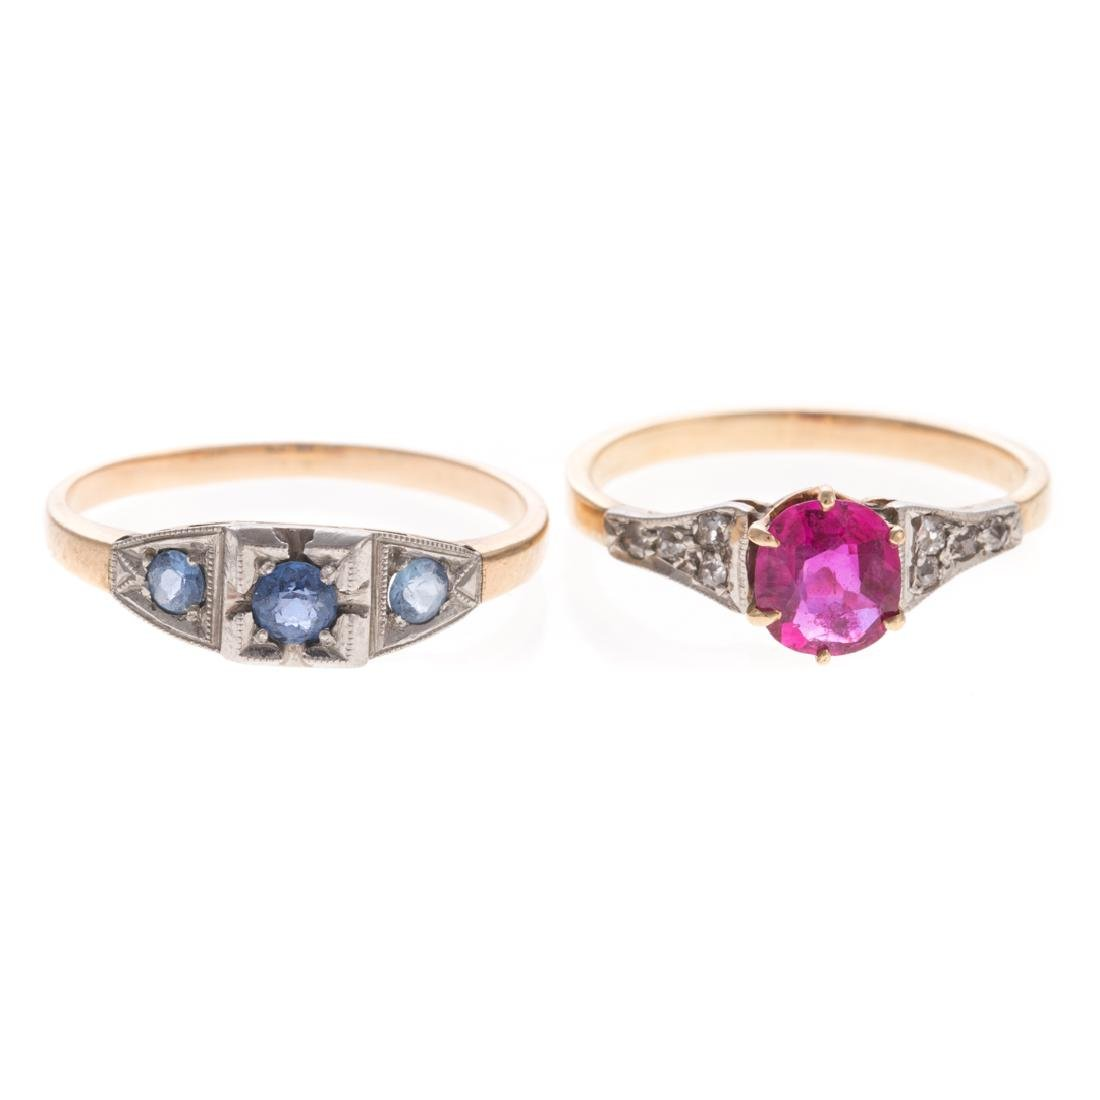 A Pair of Victorian Gemstone & Diamond Rings